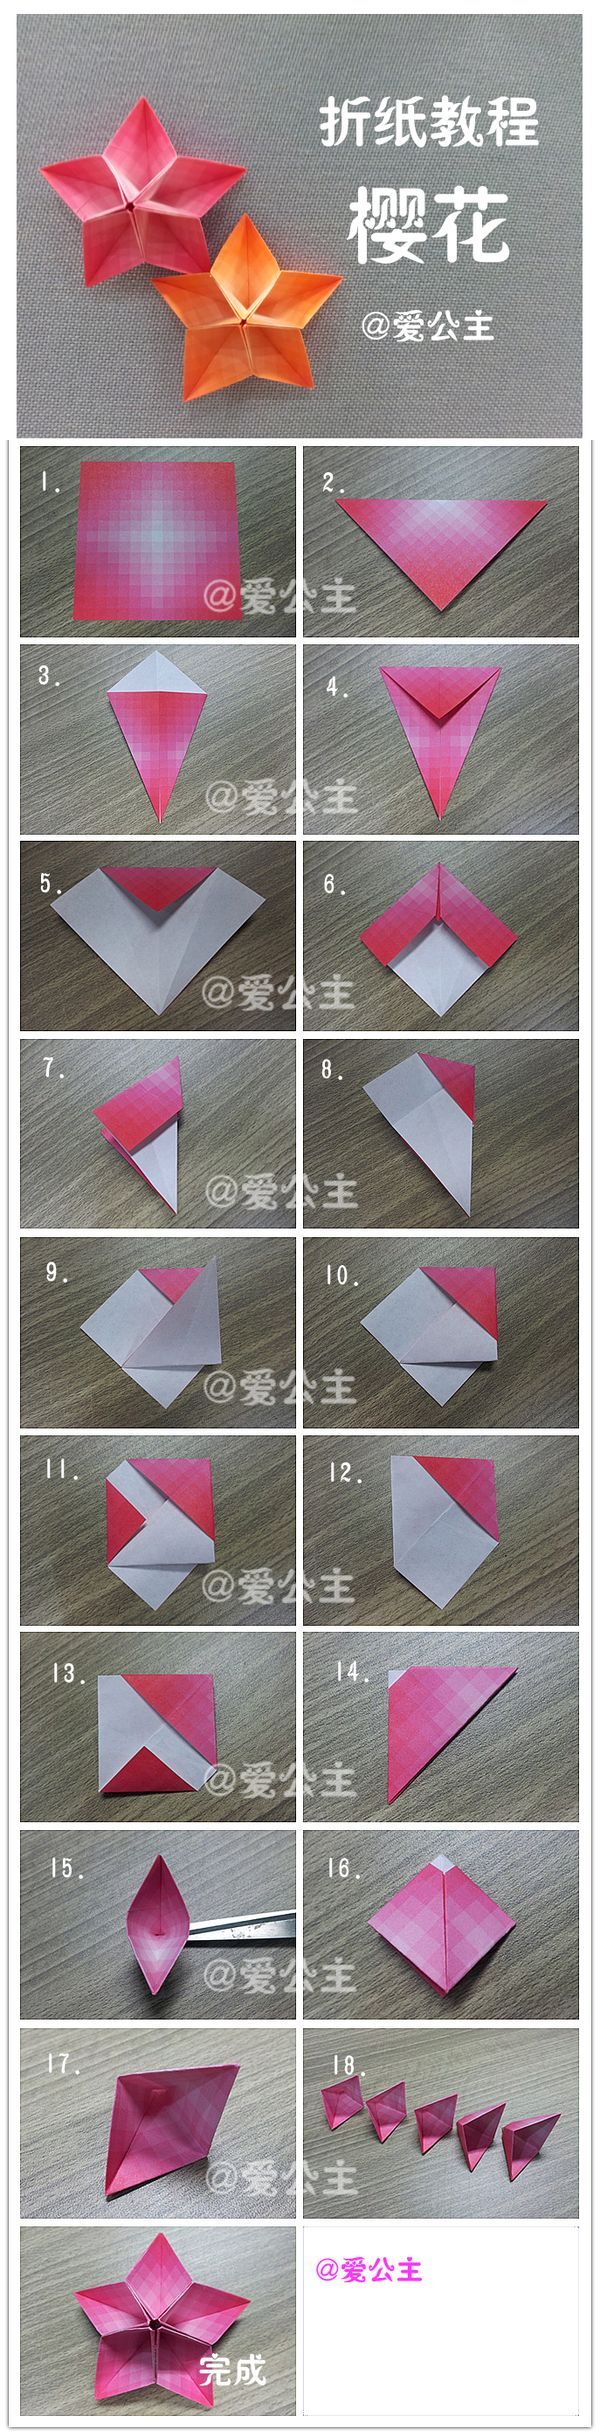 35aaa1803a77ddf6c4ad45c595c15c86g 6002436 pixels paper crafts then fill it up with simplecutebeautifulartificialorigami flowers mightylinksfo